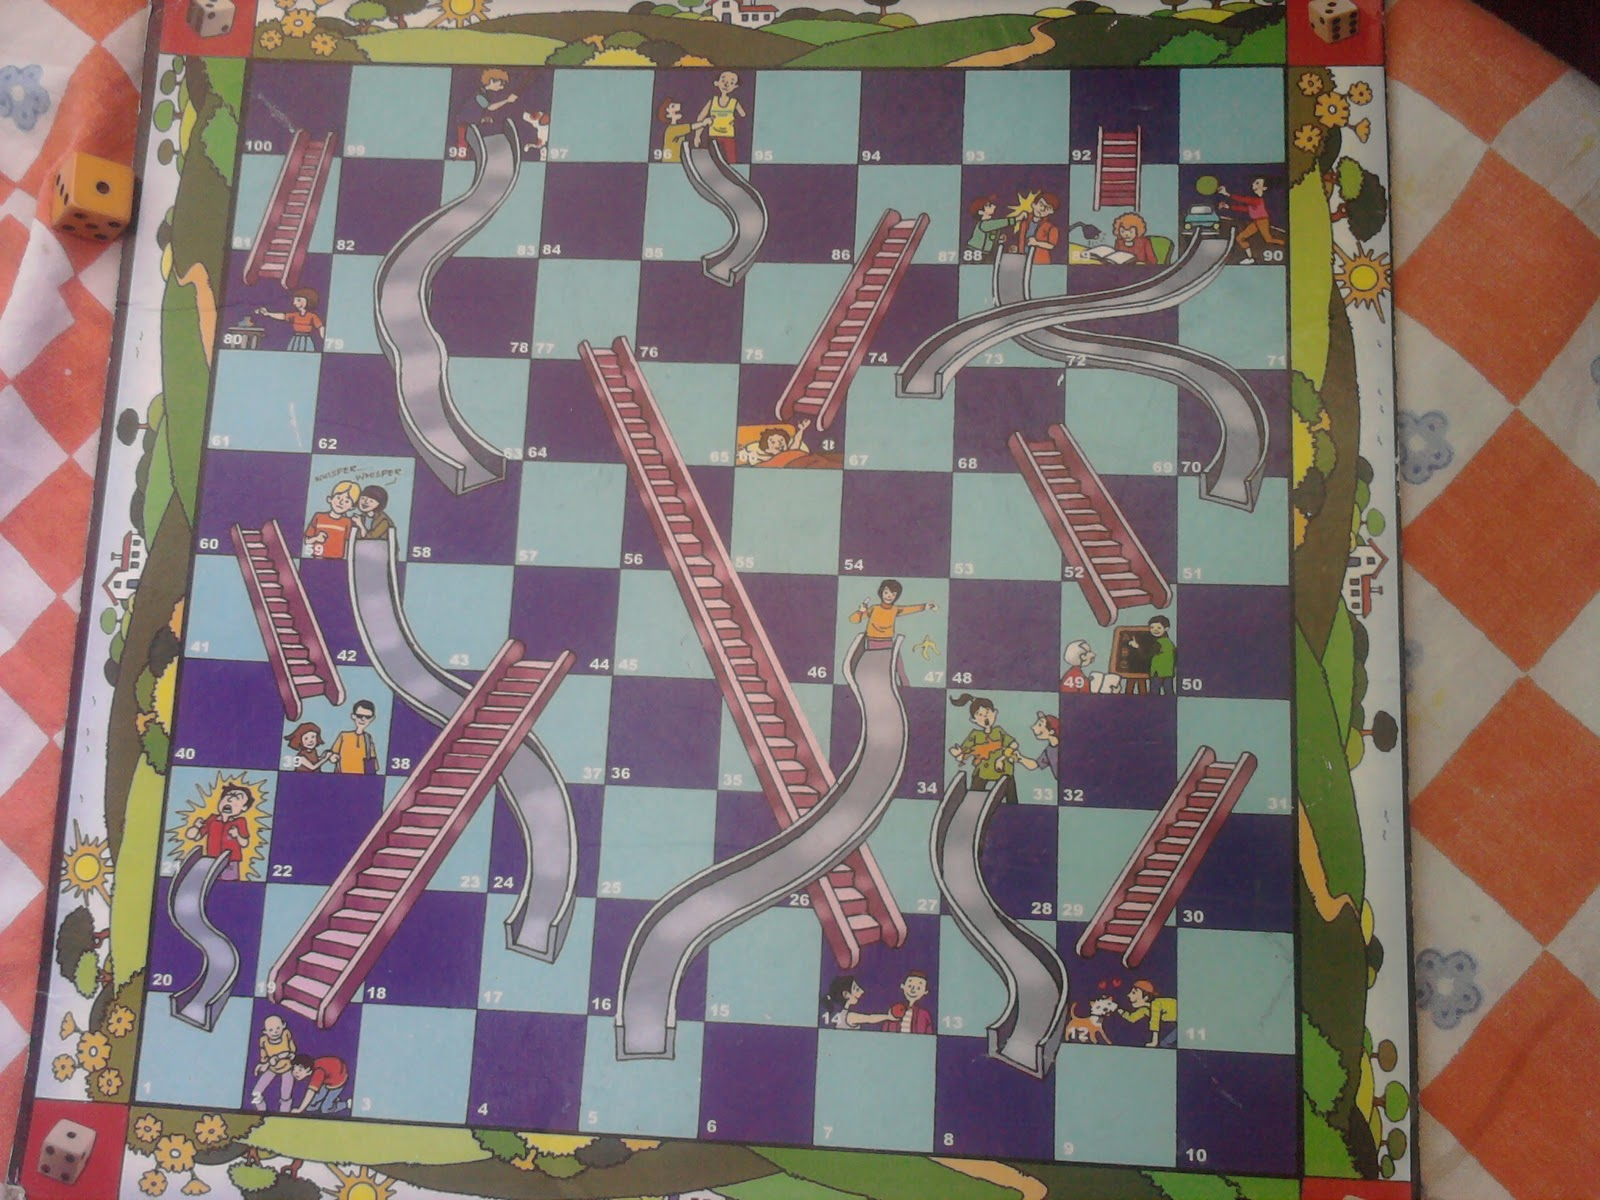 Chutes And Ladders Board Chutes and ladders